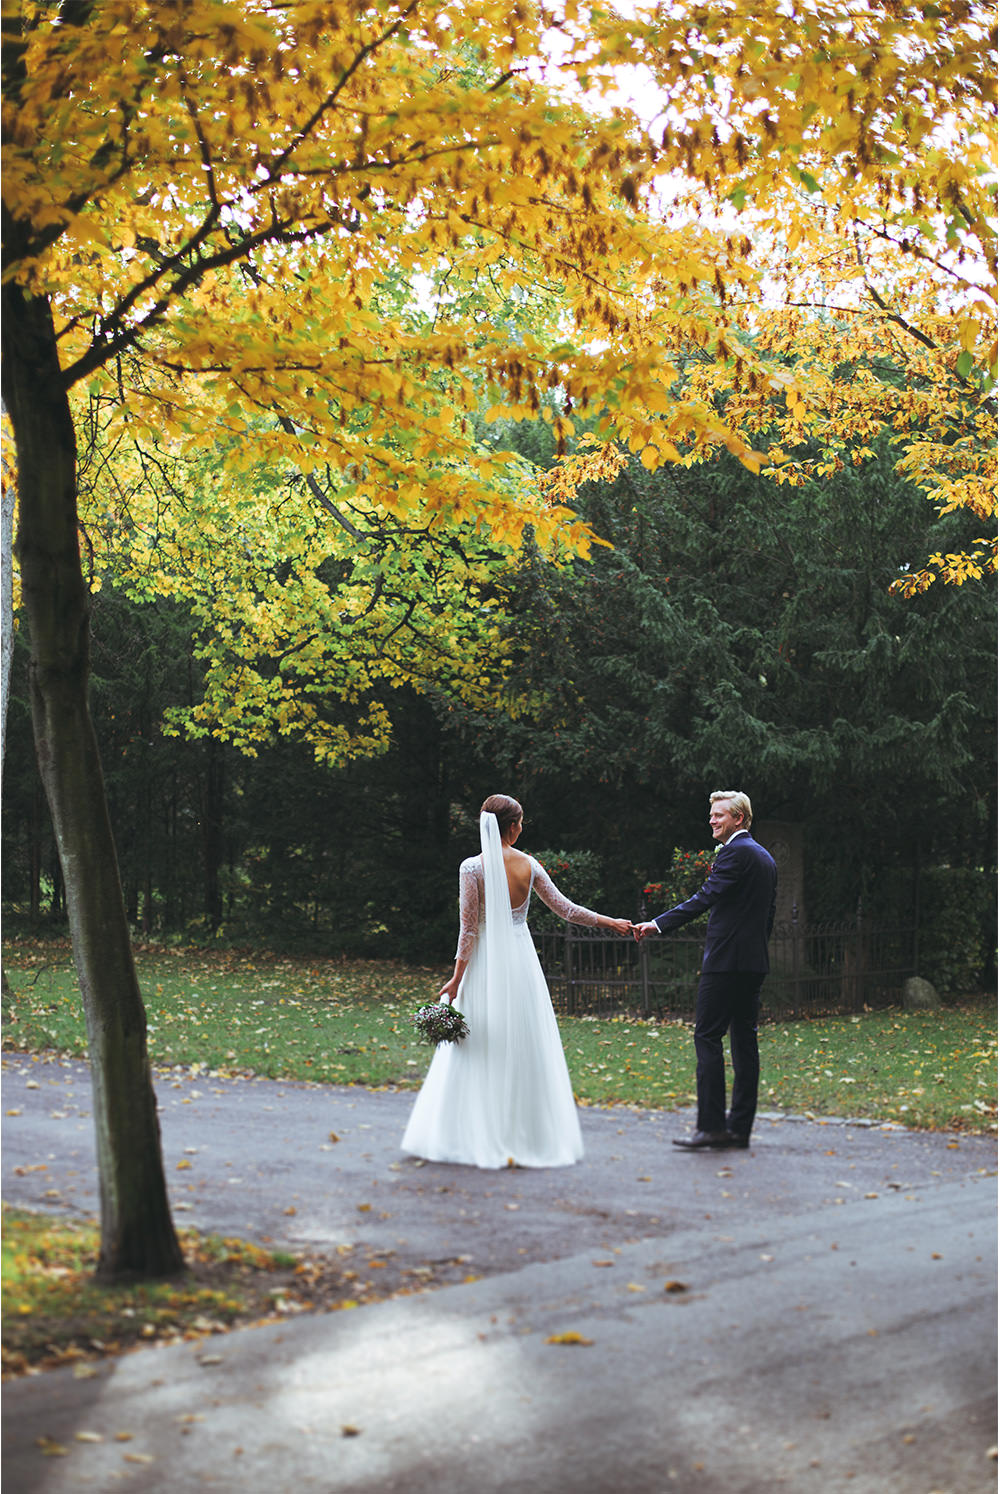 Nature wedding photo